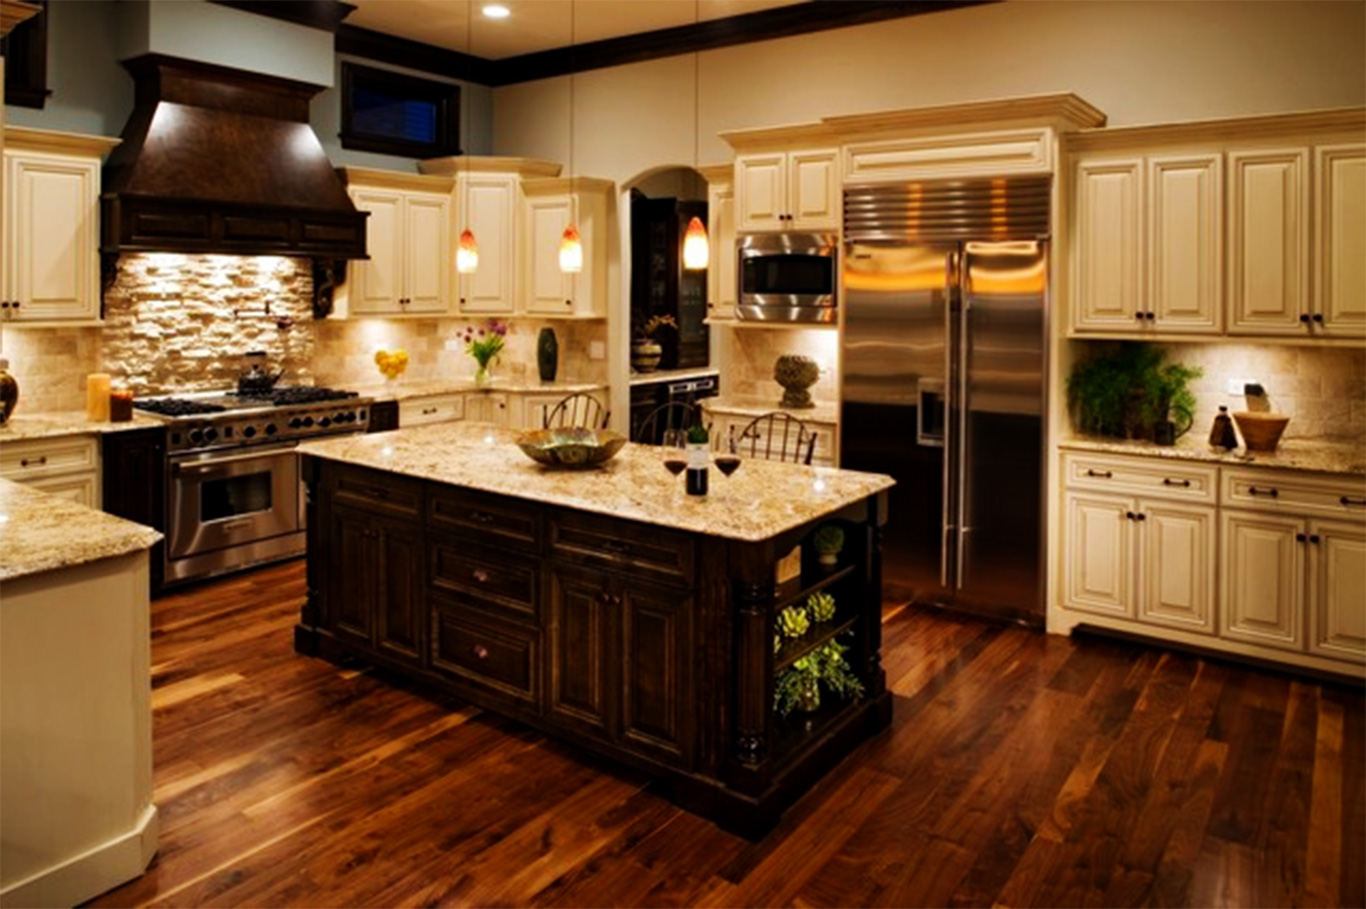 11 Awesome Type Of Kitchen Design Ideas on Rustic Kitchen